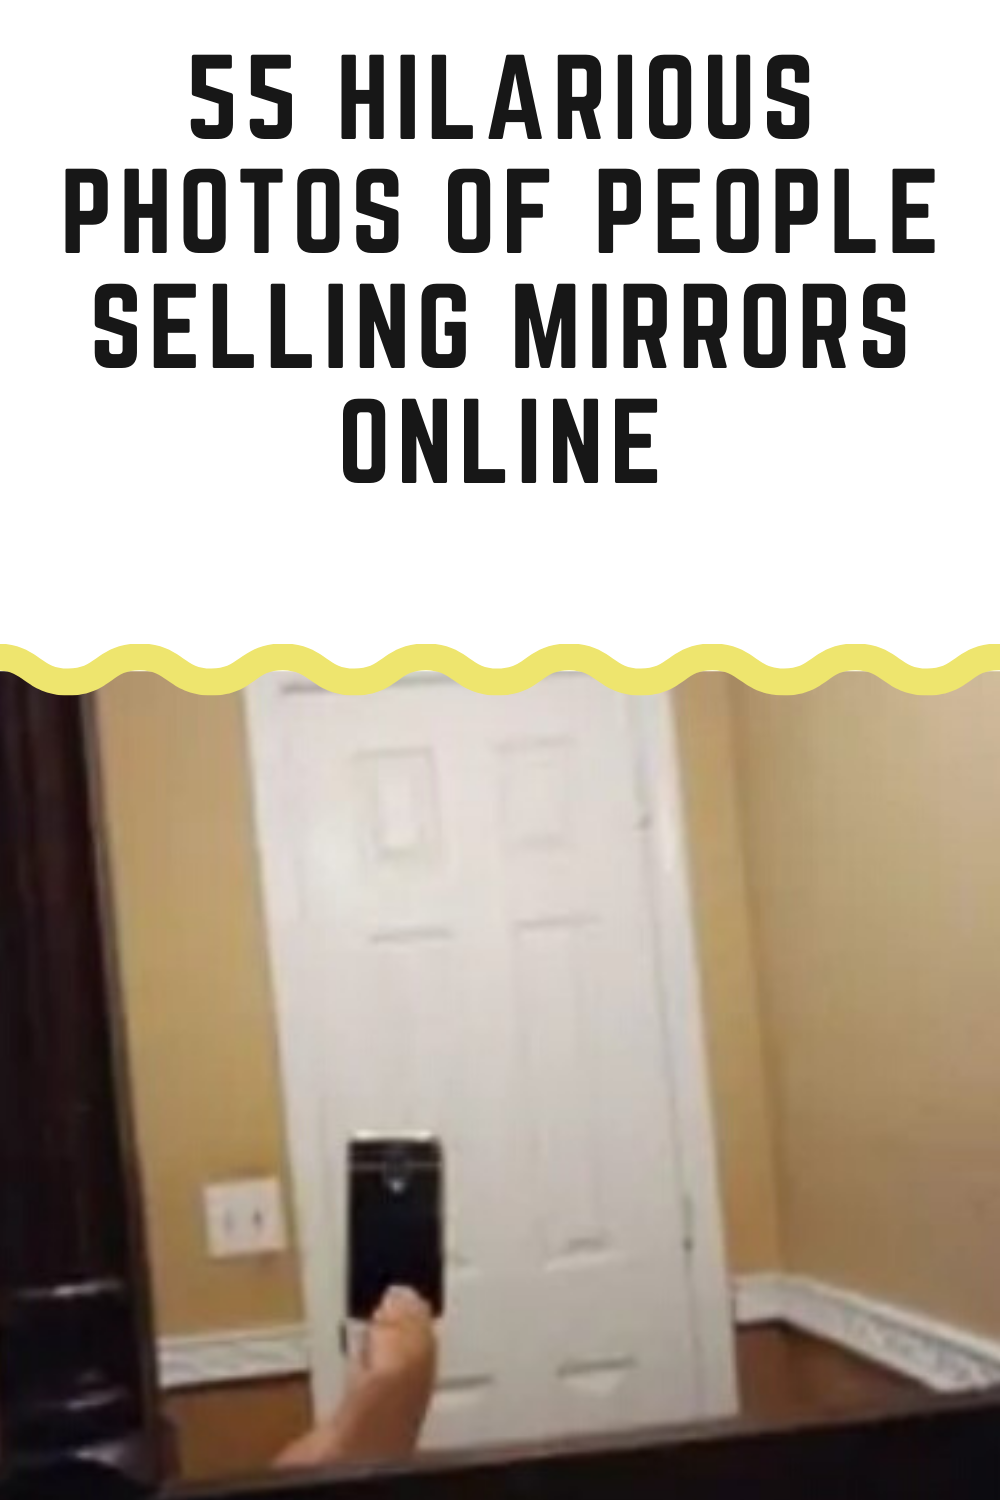 People Selling Mirrors Funny : people, selling, mirrors, funny, Times, People, Attempted, Mirrors, Online, Photo, Hysterically, Wrong, Things, Sell,, Online,, Funny, Photos